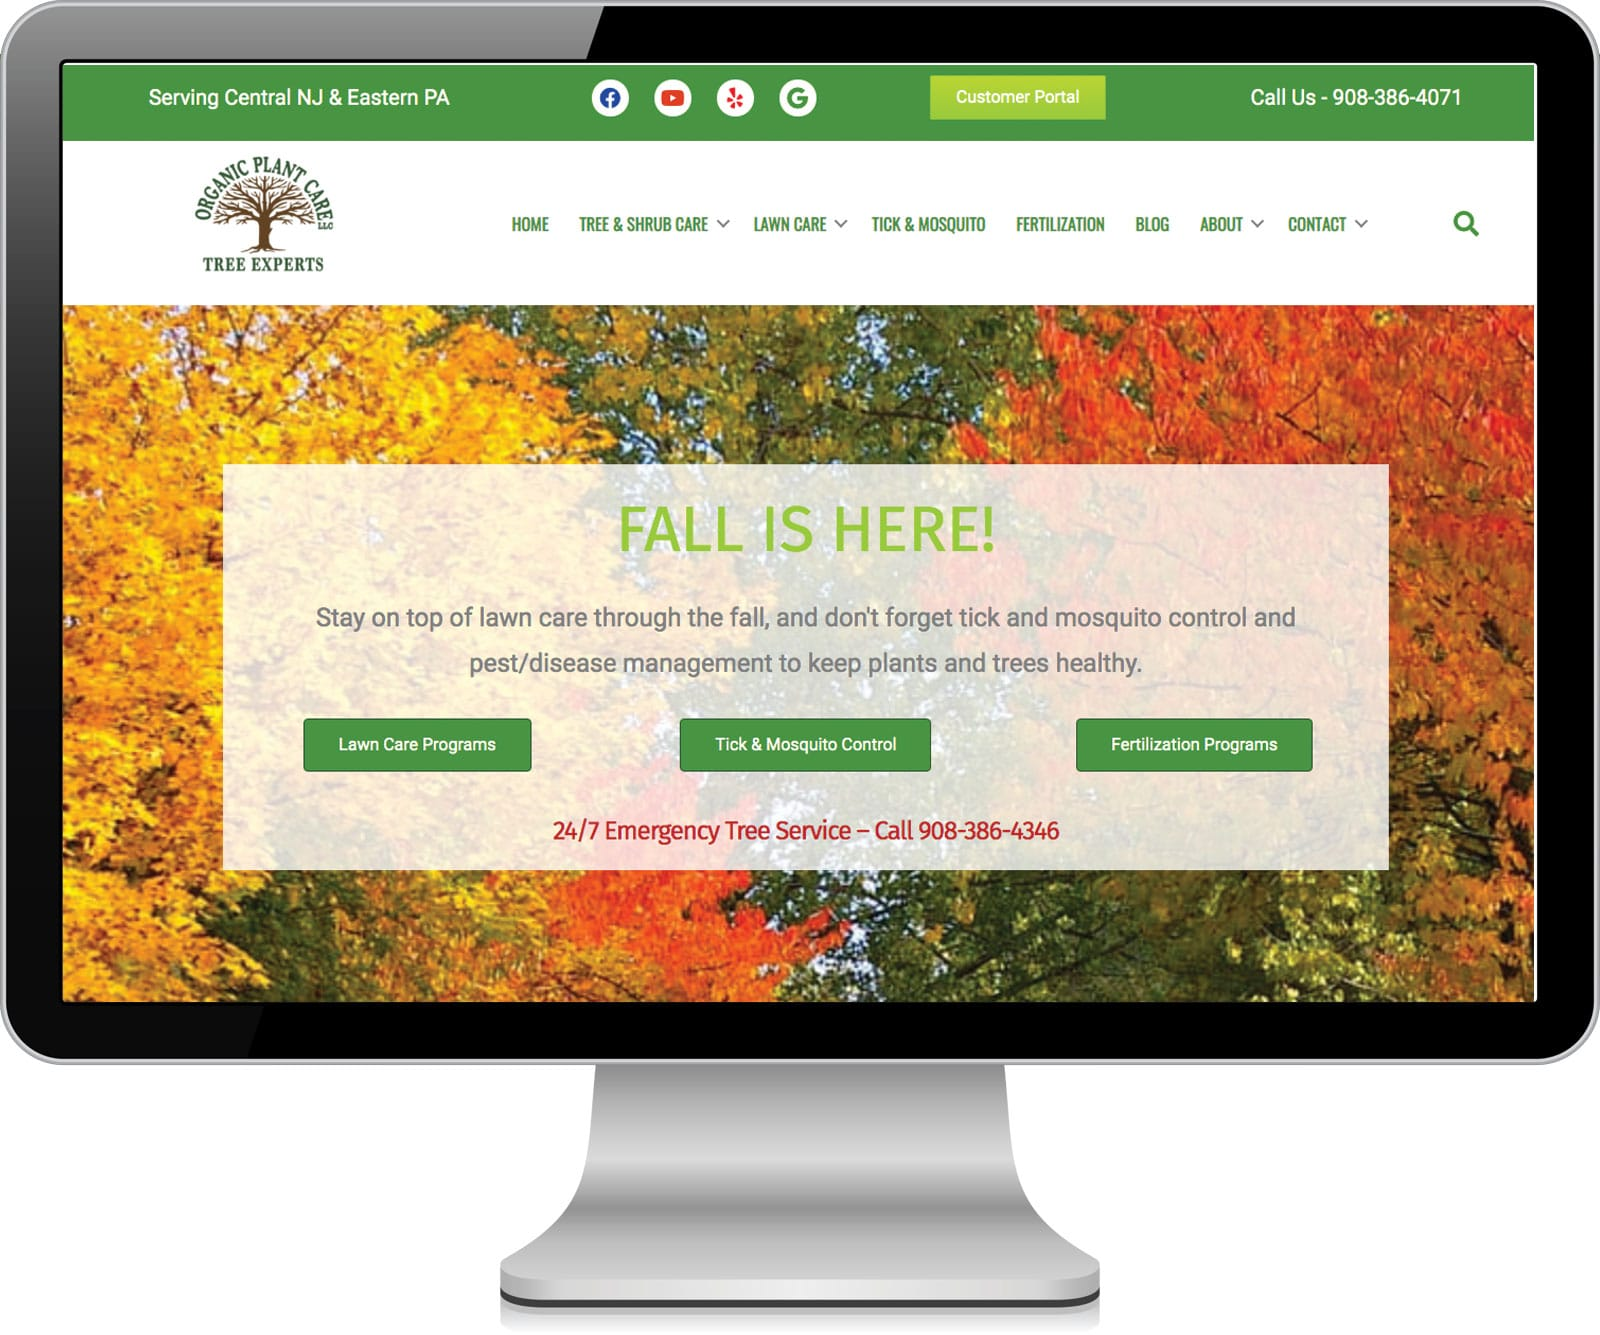 website screenshot for Organic Plant Care LLC in Flemington, NJ